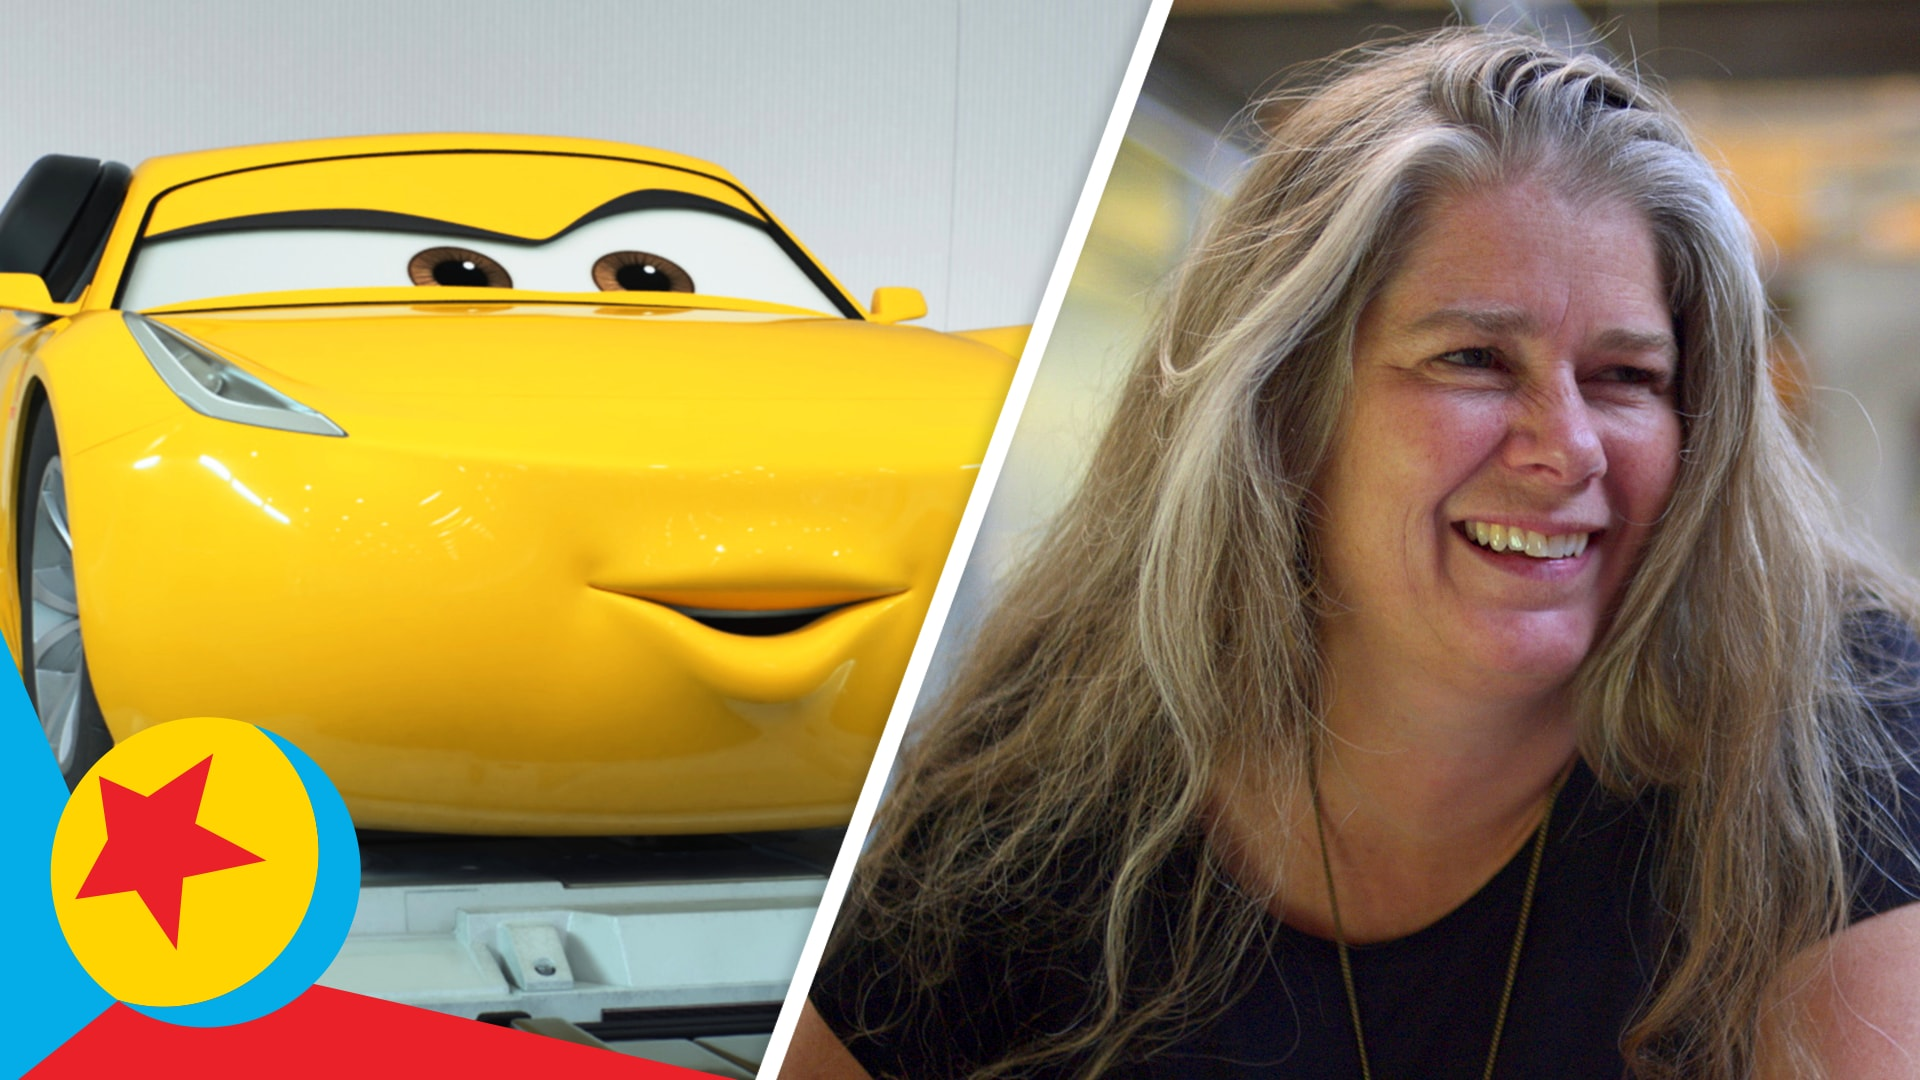 Jessica Heidt's Contribution to Gender Equality at Pixar | Inside Pixar: Portraits | Pixar